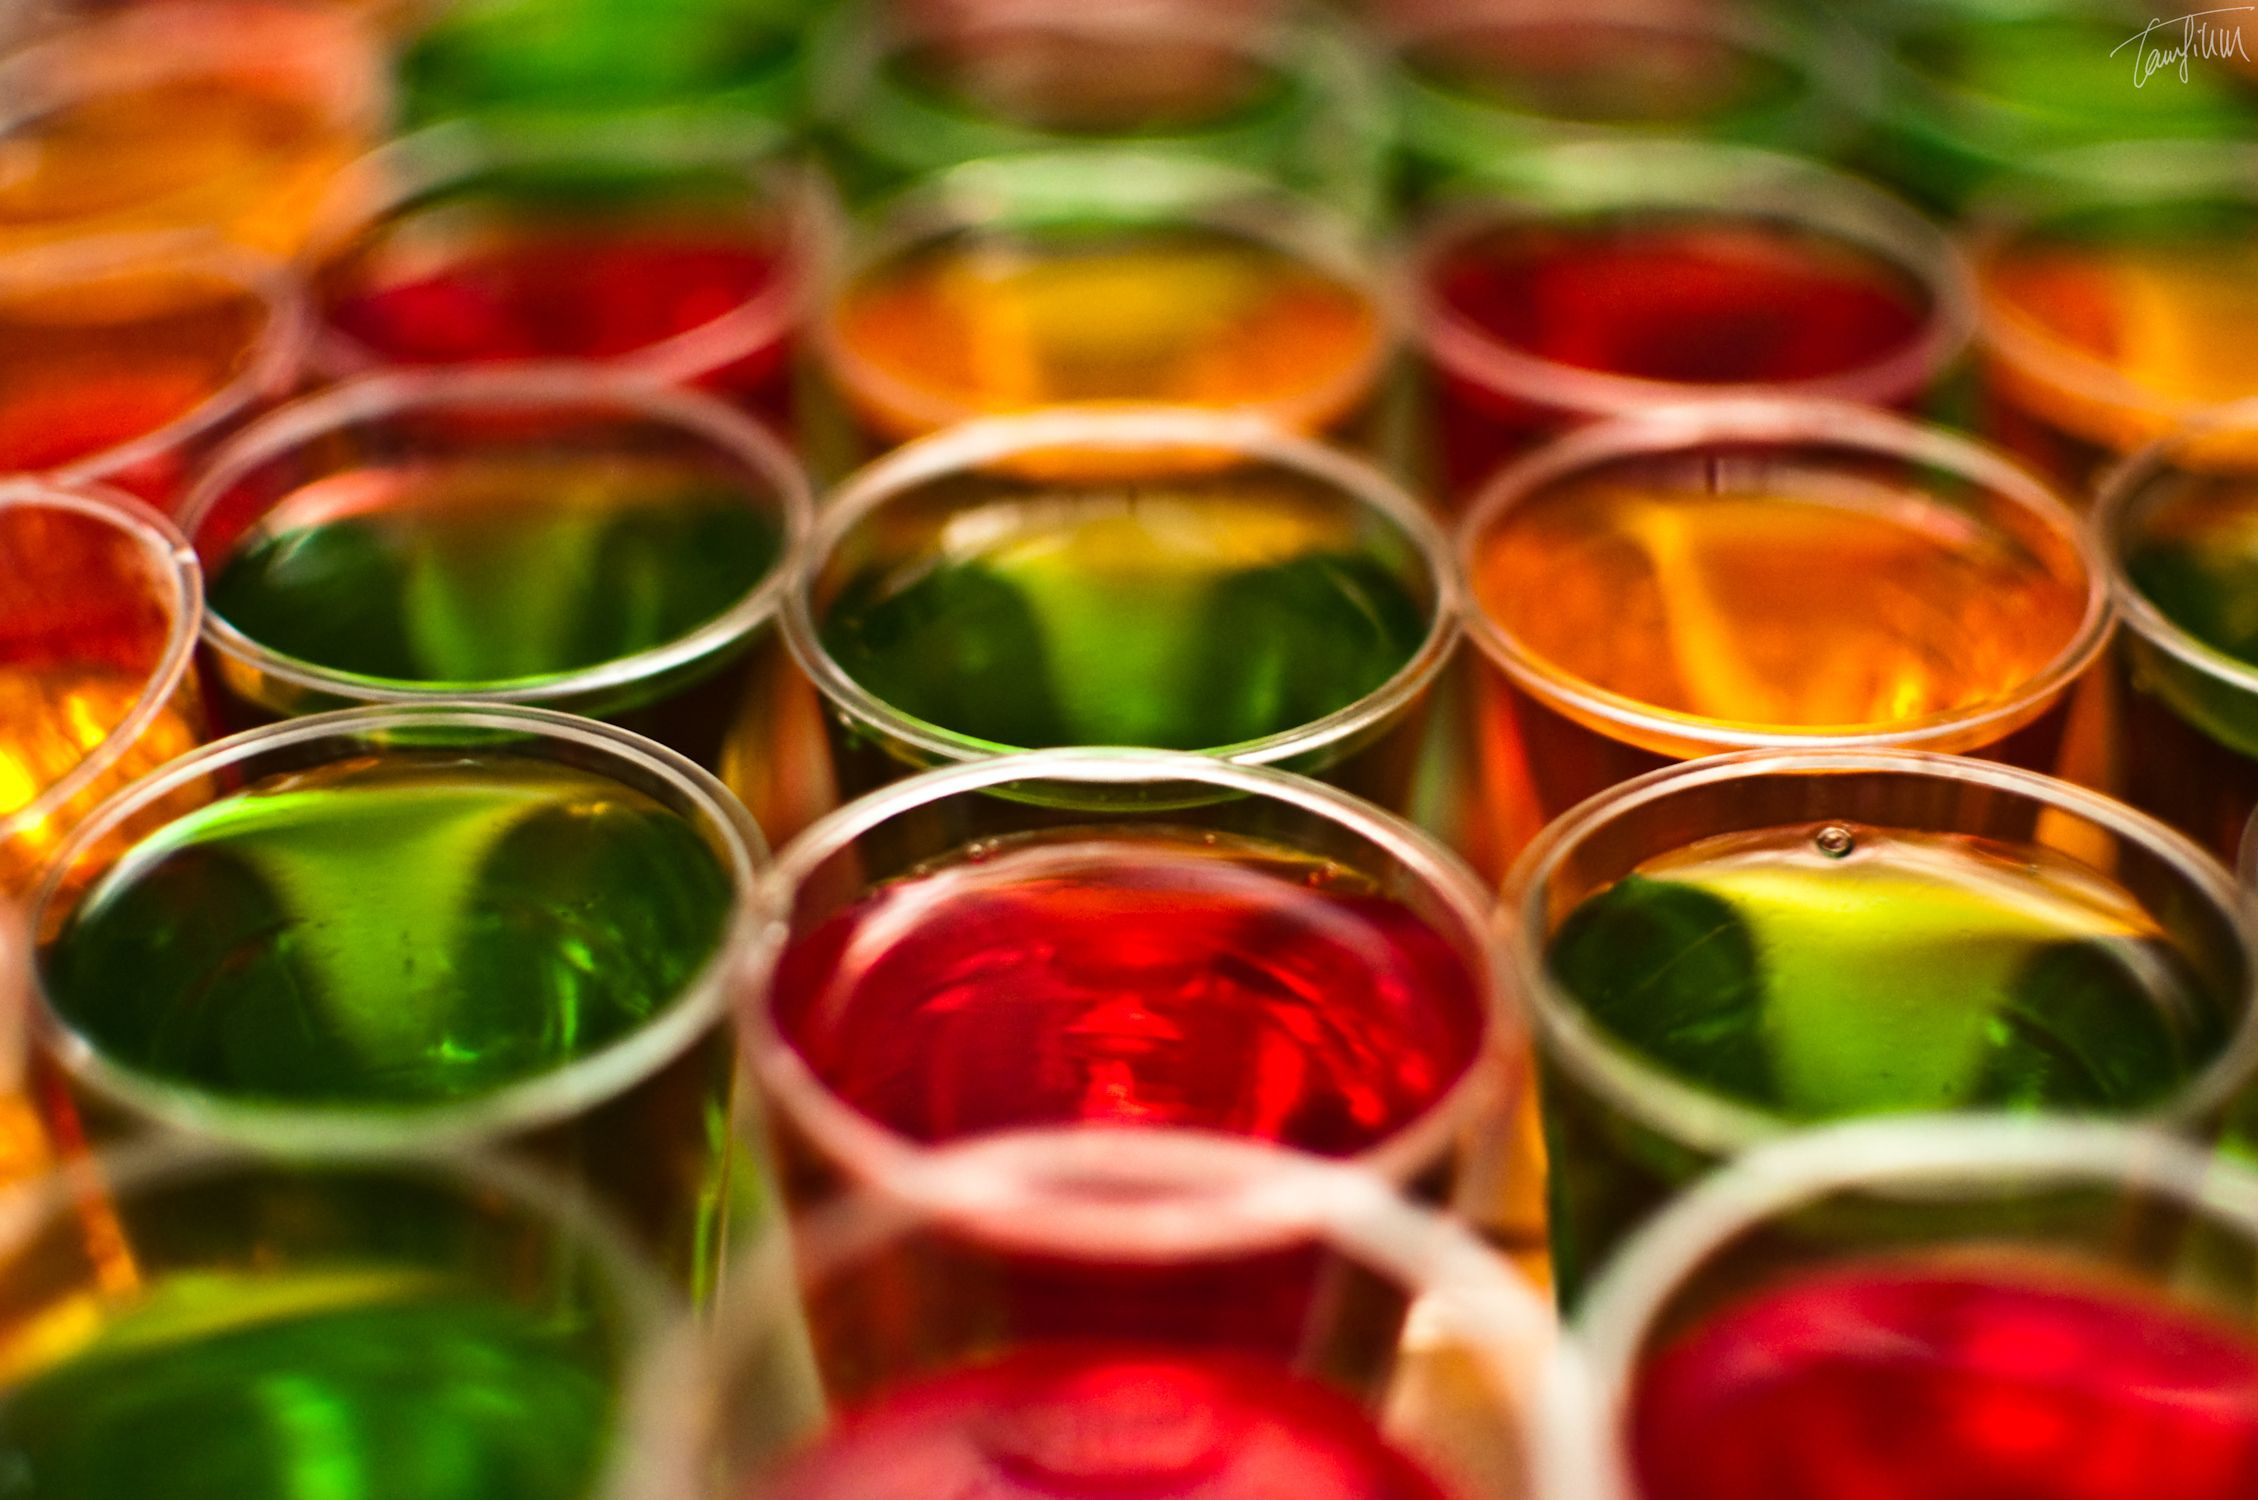 How to make jello shots without jello with images